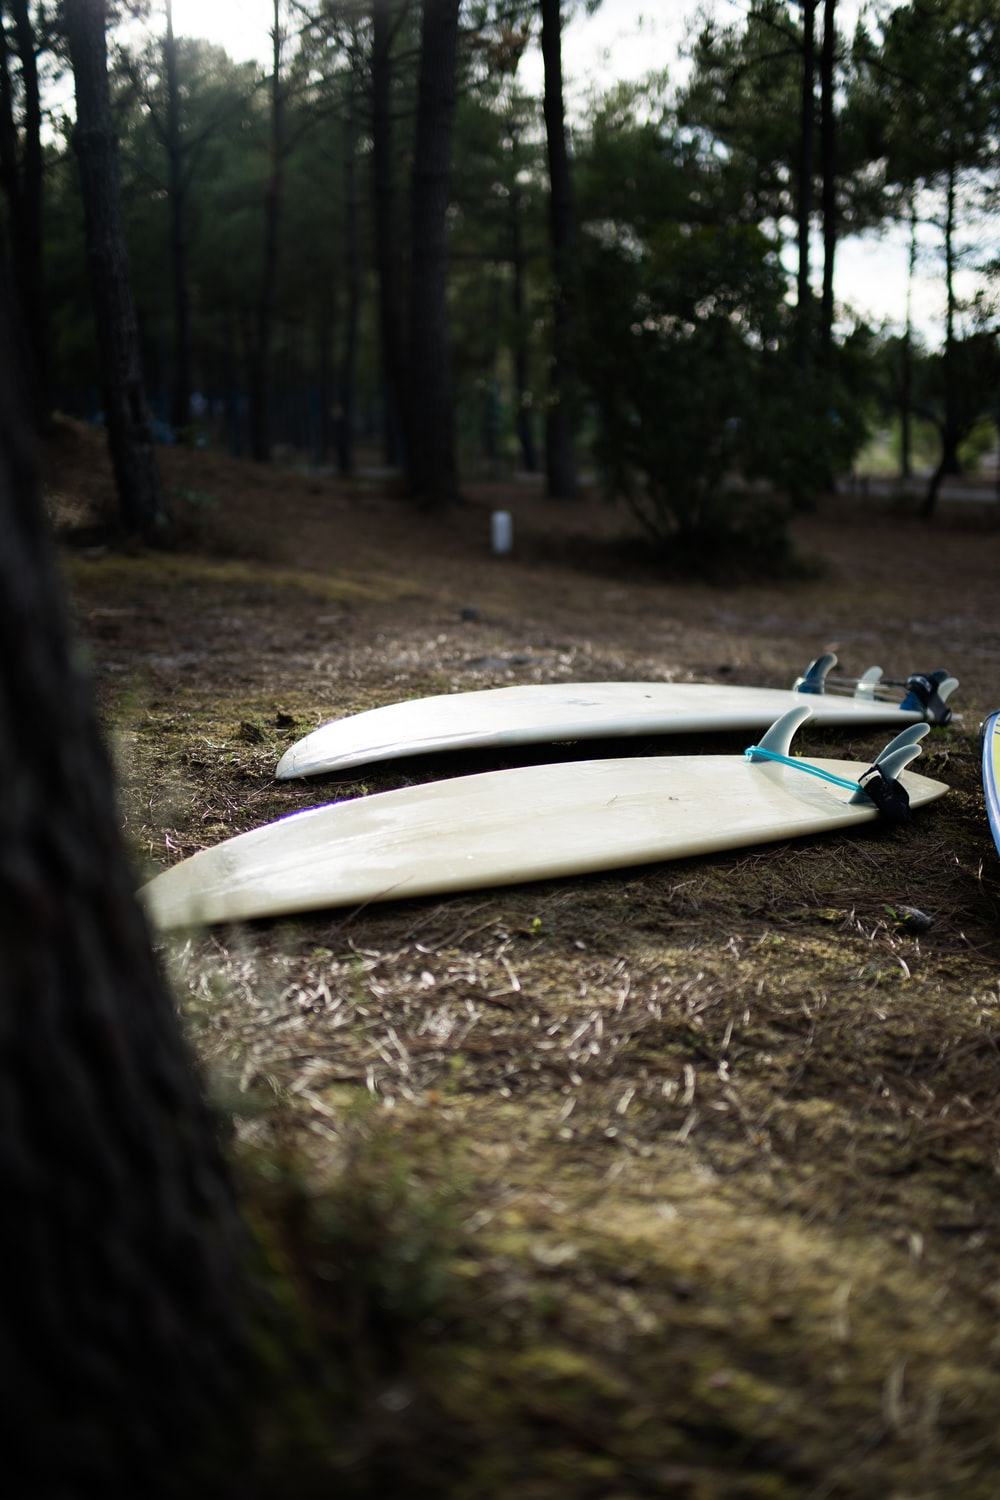 two white surfboards